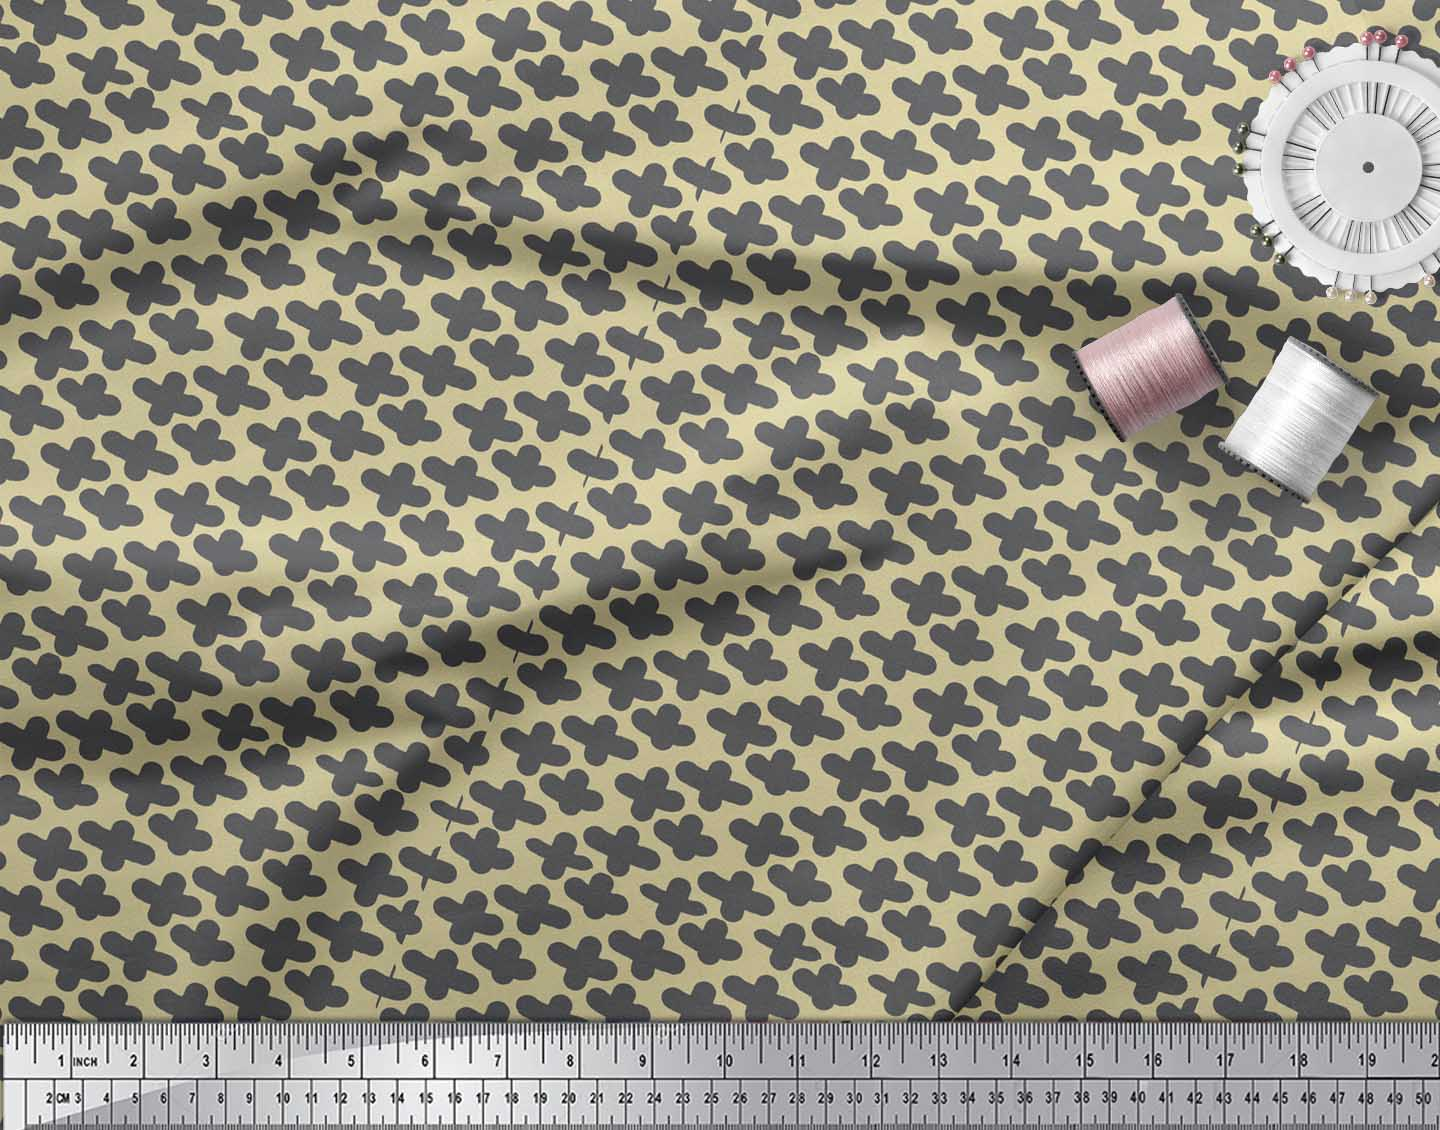 Soimoi-Beige-Cotton-Poplin-Fabric-Plus-Sign-Geometric-Decor-Fabric-2xU thumbnail 3